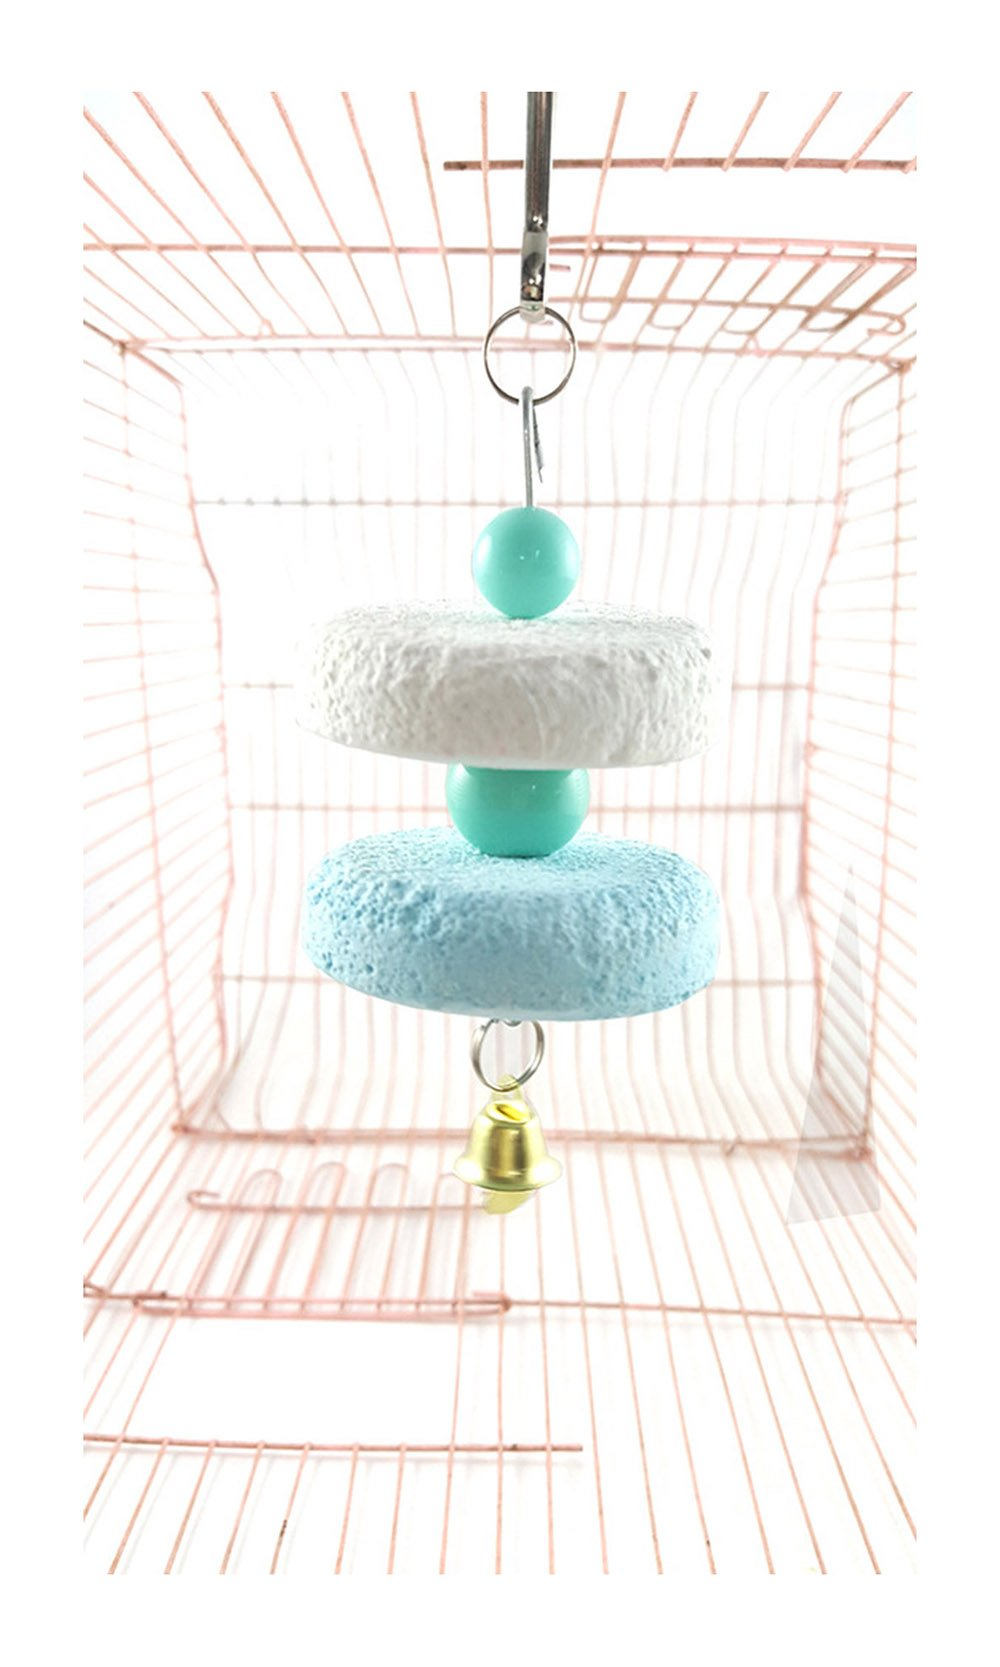 PetsMostHome Mineral Grinding Series of Parrot To Argue Pointlessly Stone Toys Bird Perches 3 Colors 2 Pieces a Set